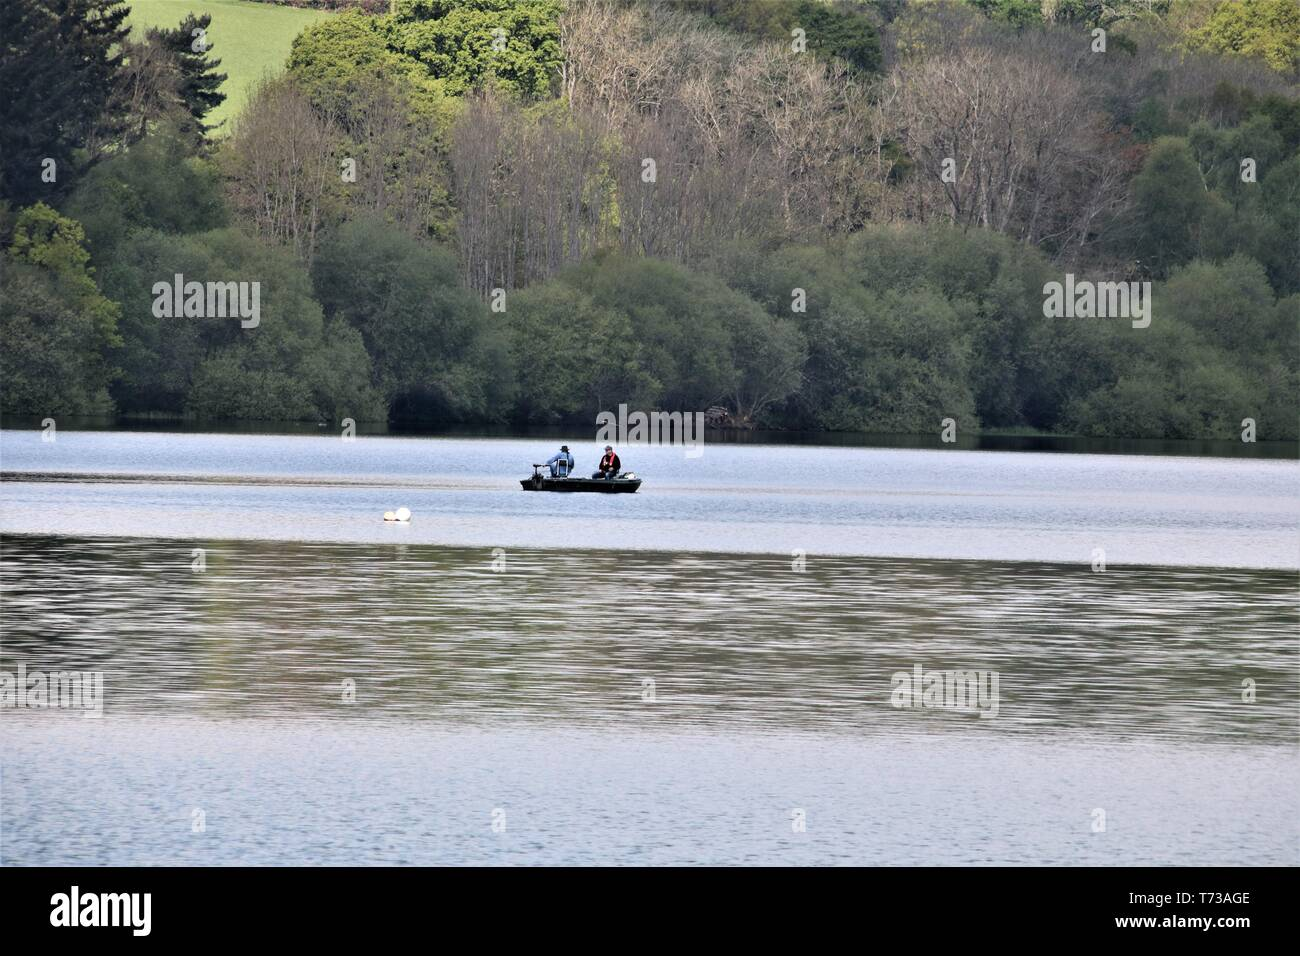 anglers fishing from a boat on ardingly reservoir, sussex, on a nice day - Stock Image